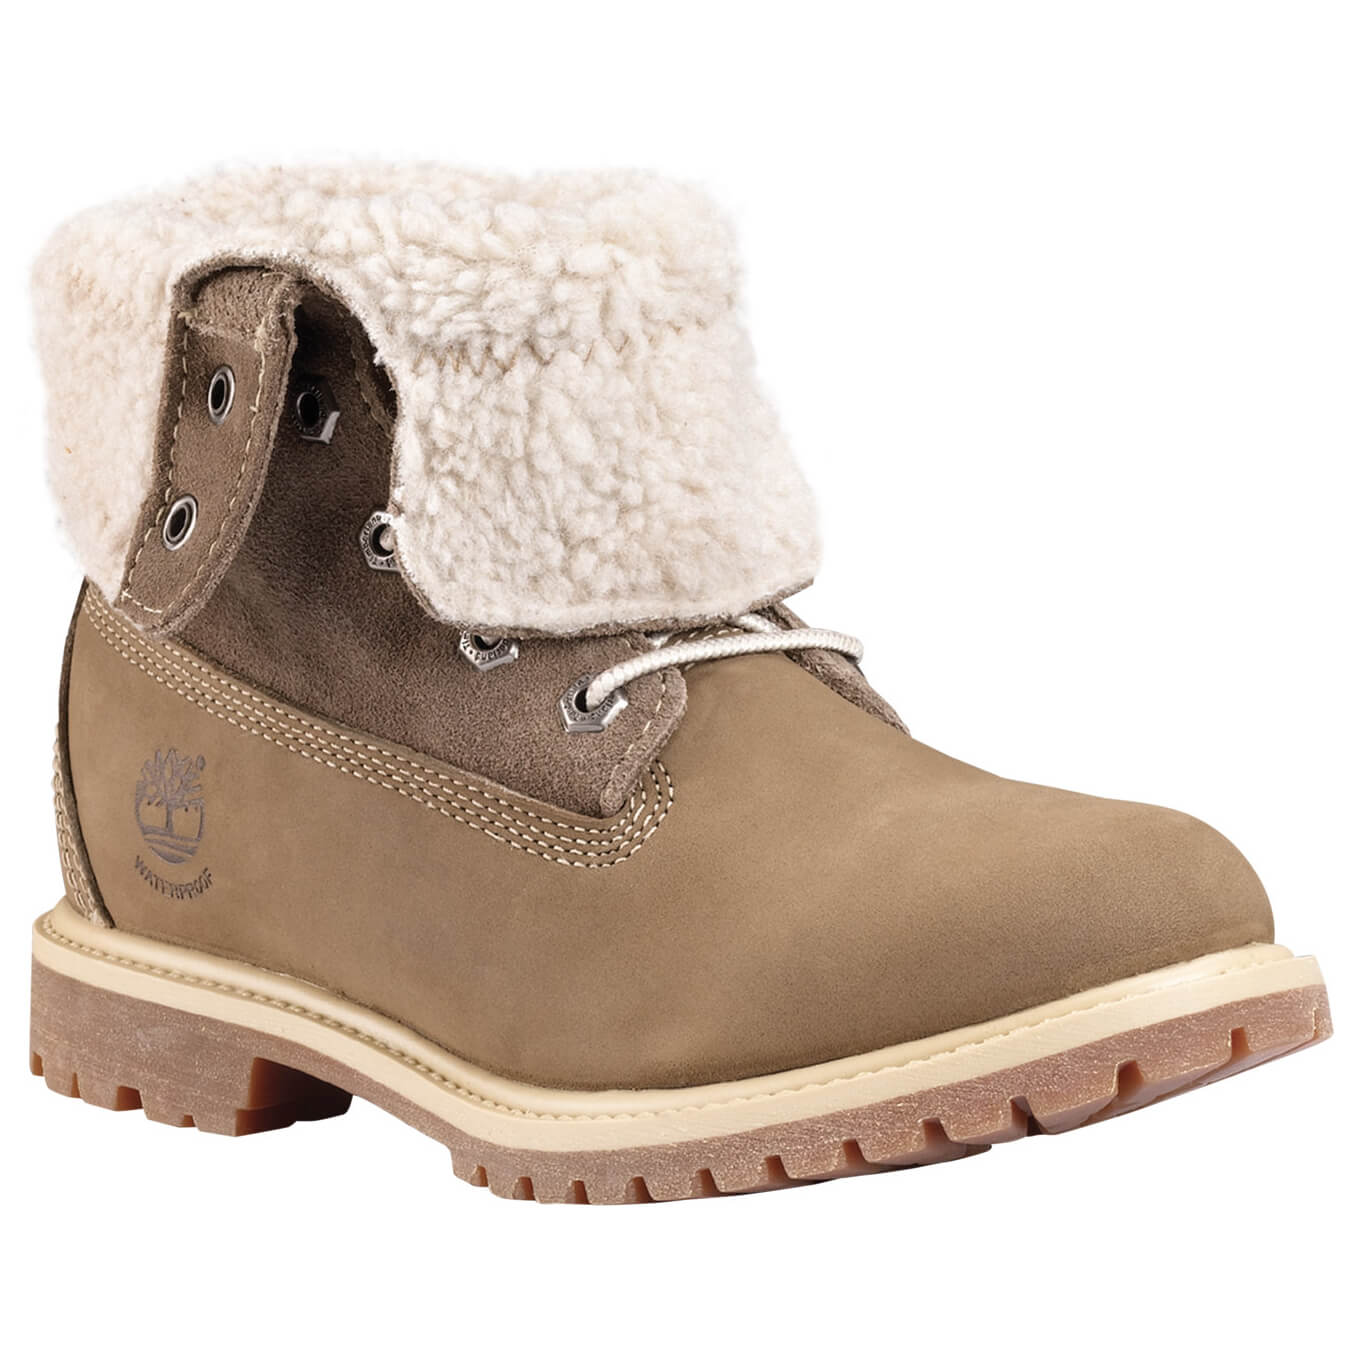 Fashion week Womens timberland winter boots photo for girls